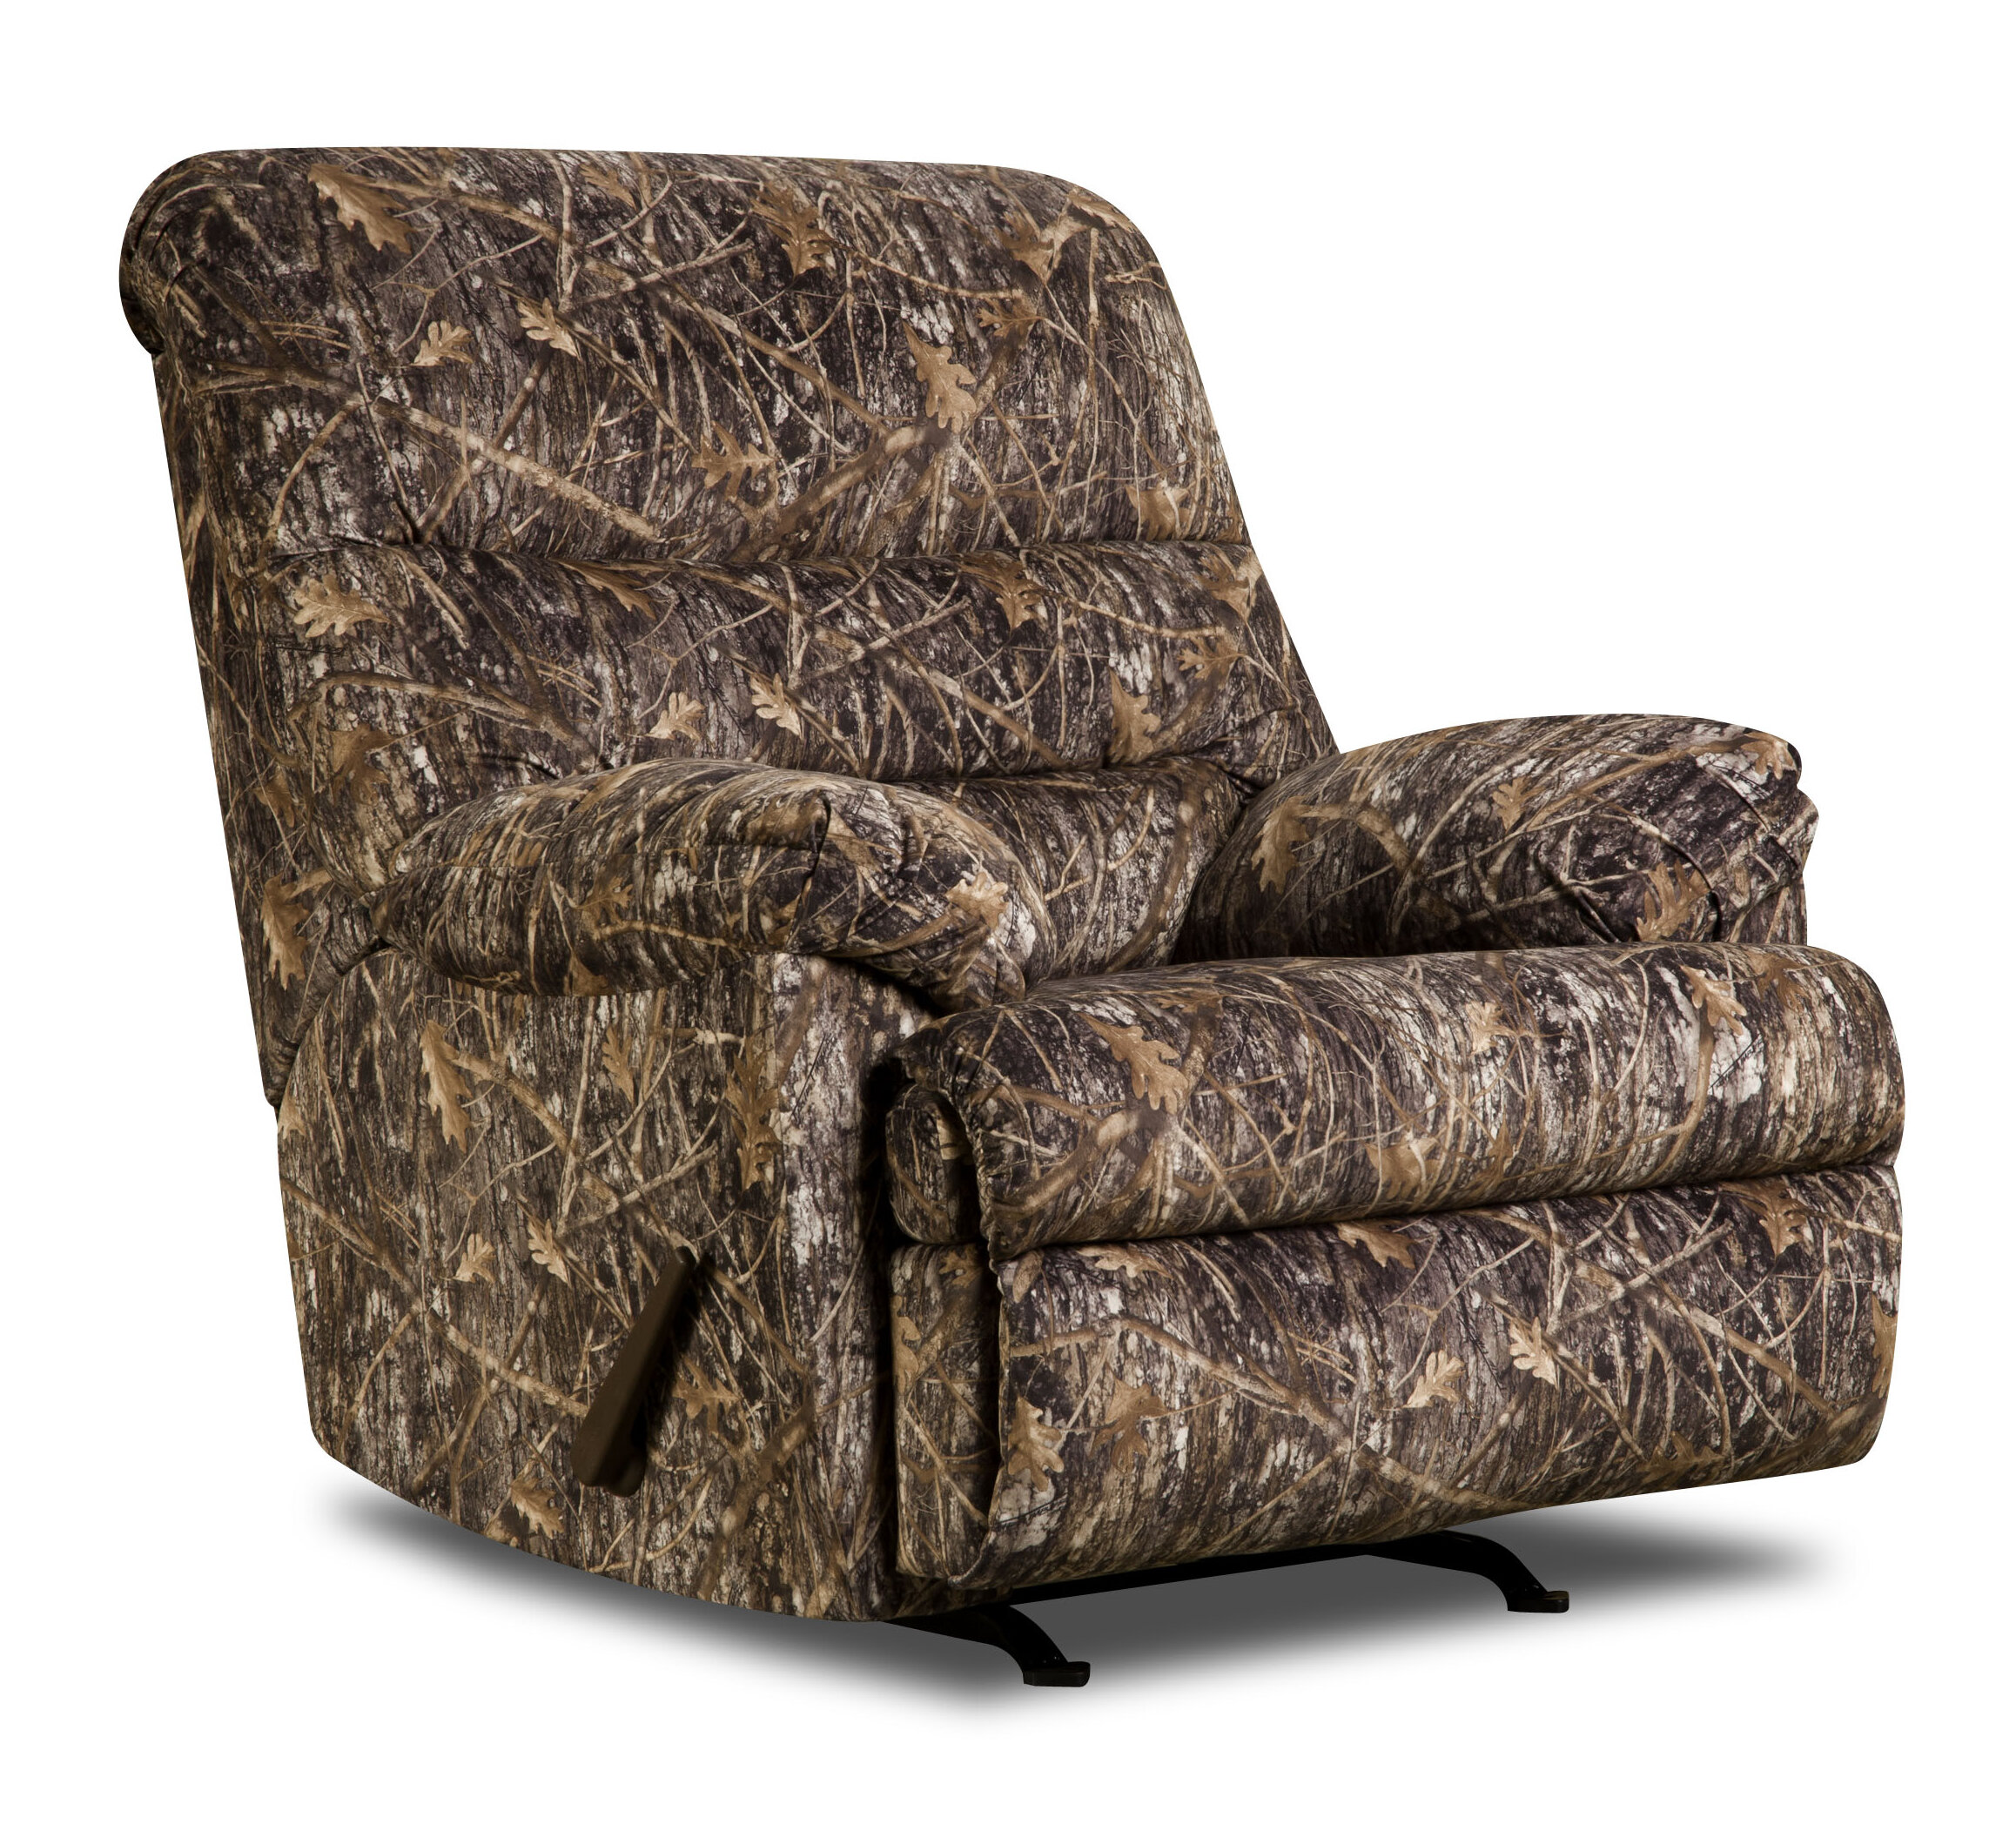 a rest boy rocker circled not to slightly in bent seem reclining z red would actuator but arm does bolt footrest town fix loose lazy mechanism or foot so harbor repair chair la should how that the it recliners recliner much affect